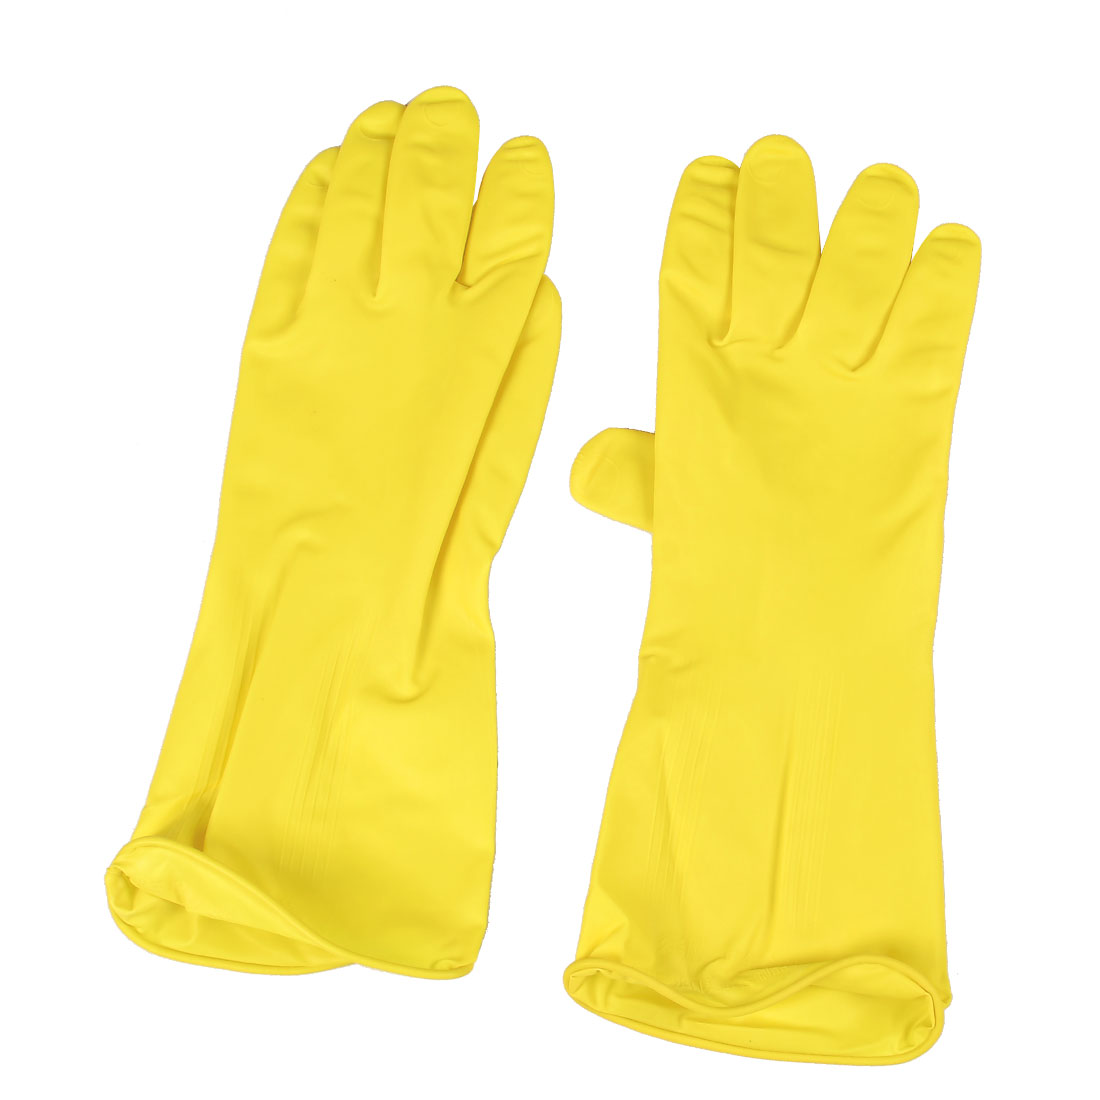 Pair Yellow Nonslip Kitchen Dishwashing Cleaning Washing Latex Gloves